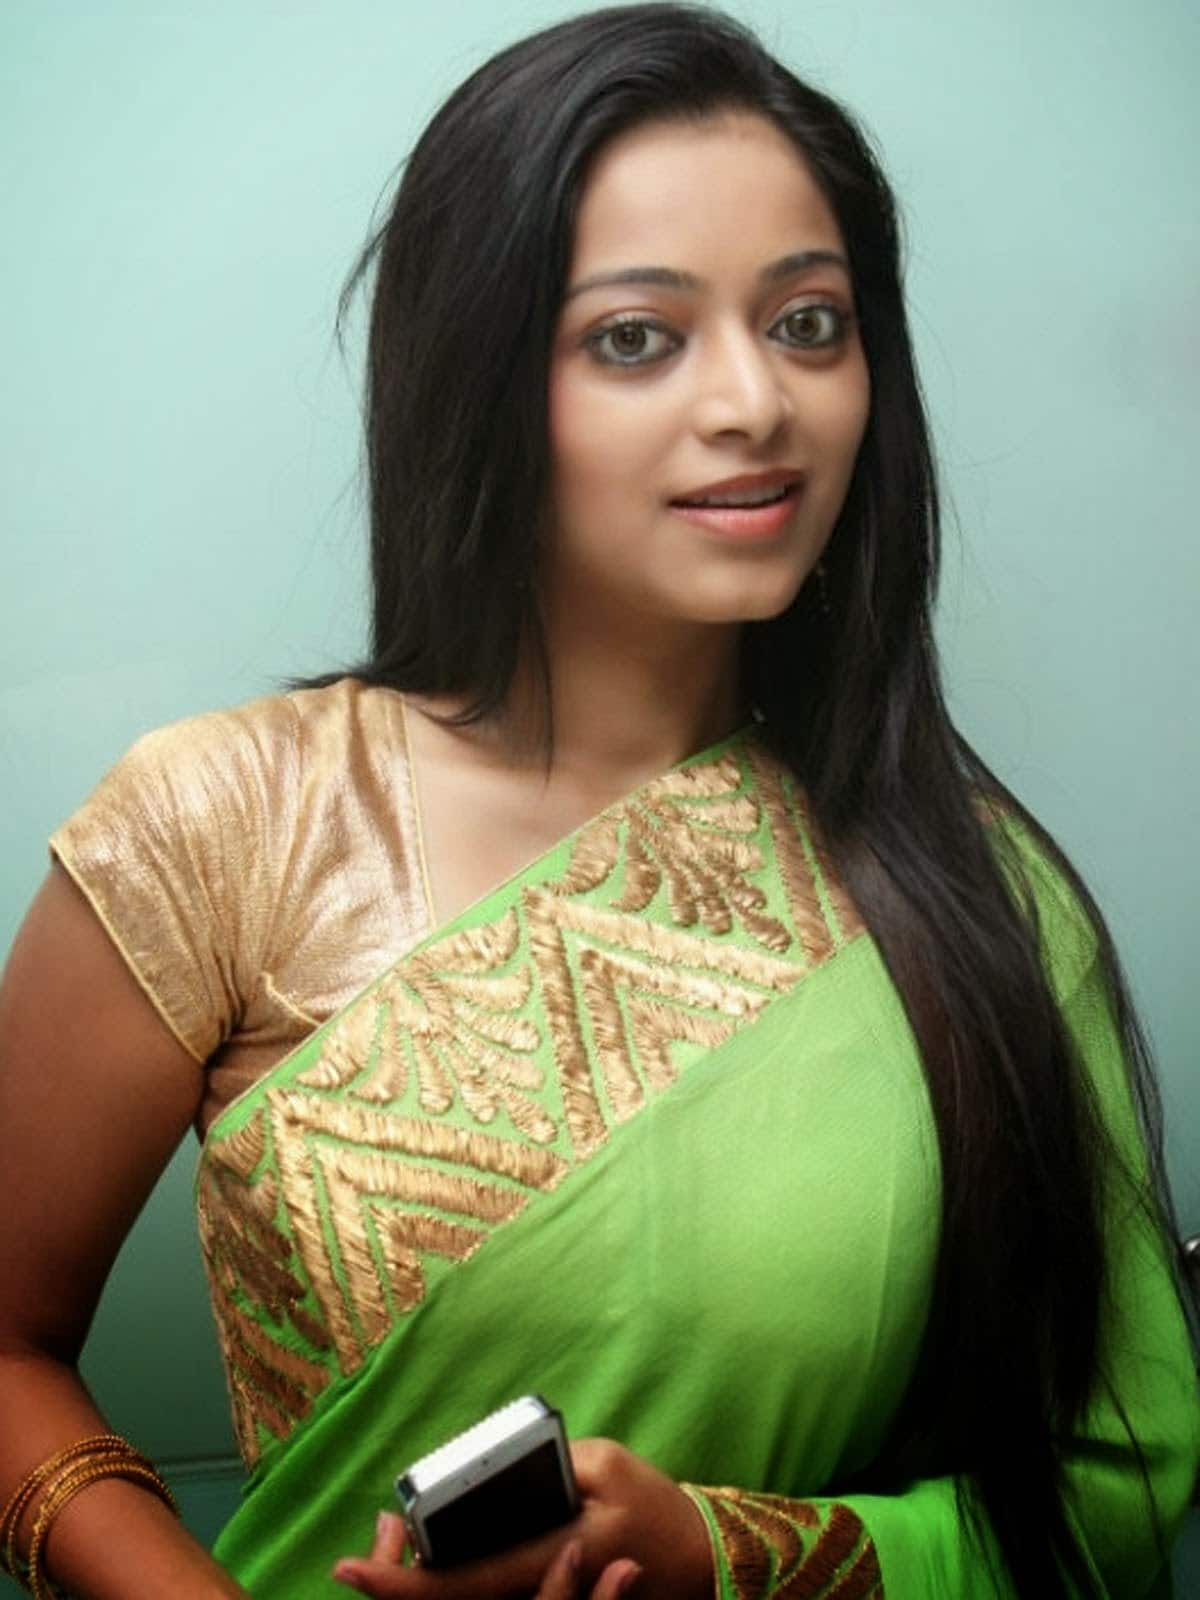 Janani Iyer Prefers To Be Known By Her First Name Only Desimartini